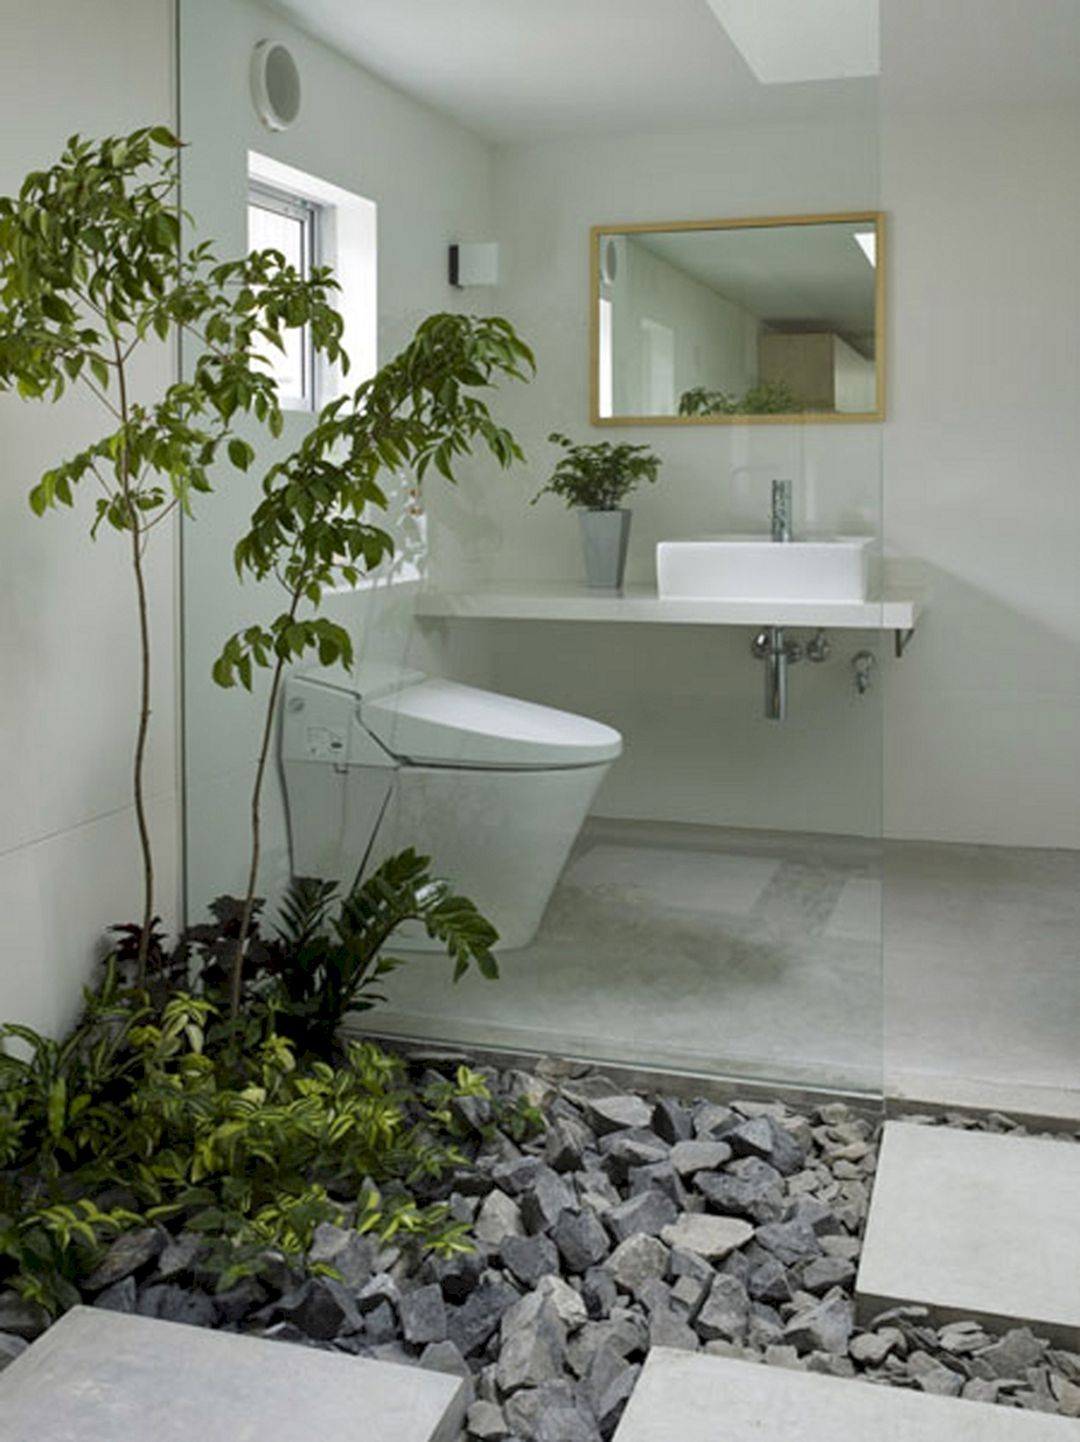 6 Awesome Bathroom Design With Indoor Plants To Make Your